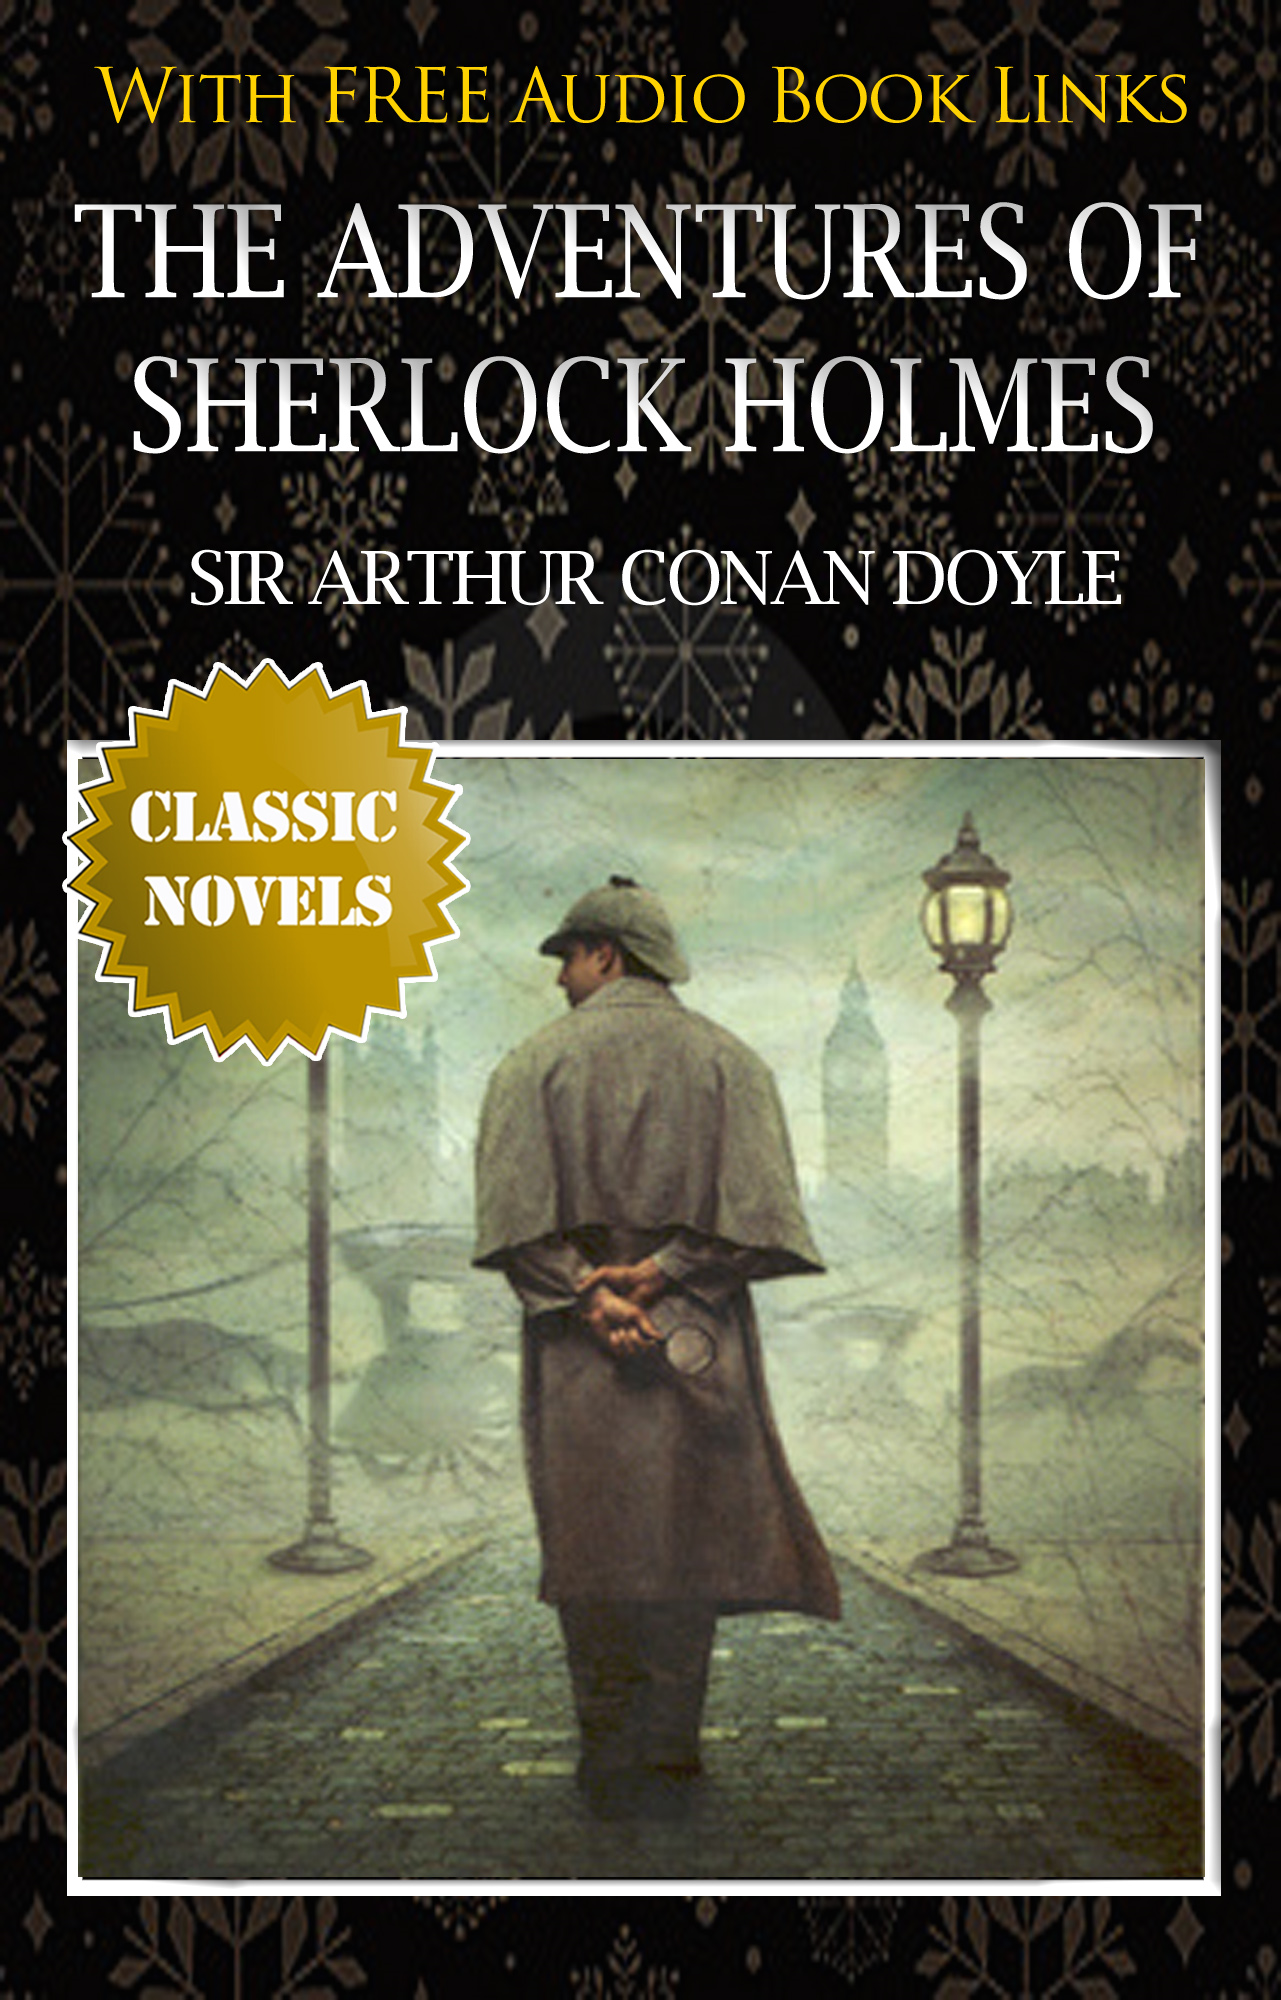 THE ADVENTURES OF SHERLOCK HOLMES Classic Novels: New Illustrated By: SIR ARTHUR CONAN DOYLE